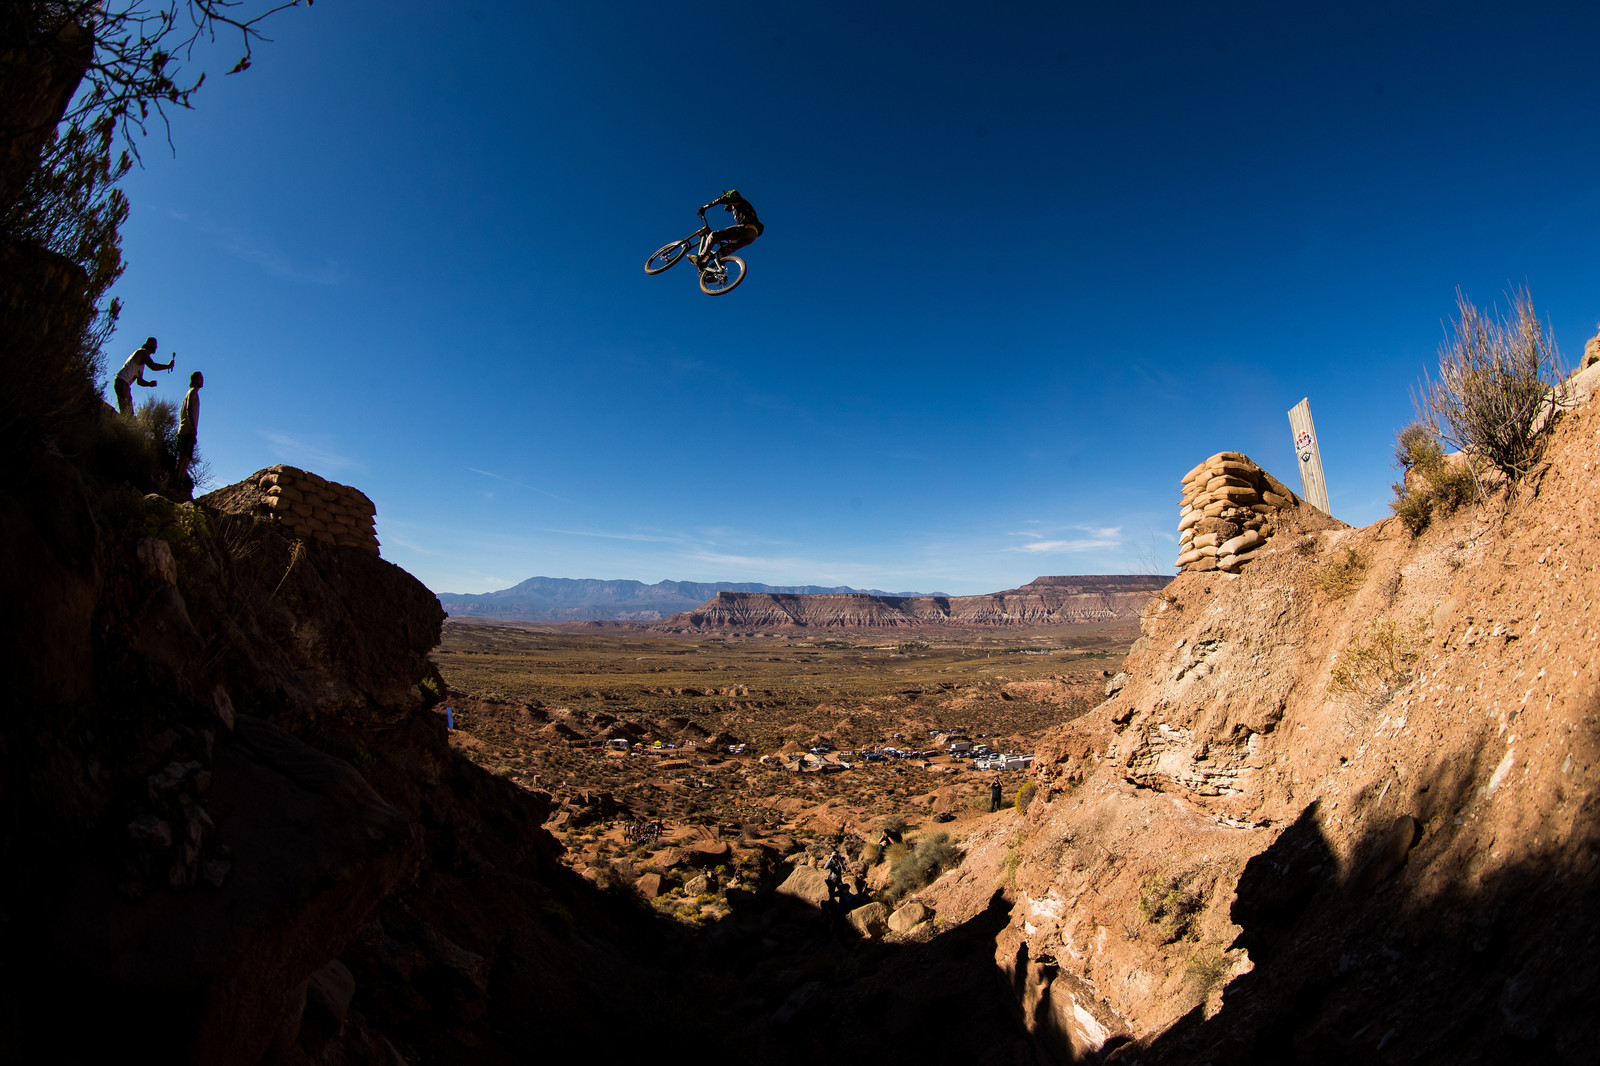 Fairclough's Canyon Gap at Red Bull Rampage 2019 - @maddogboris Photos - Final Red Bull Rampage Practice Session - Mountain Biking Pictures - Vital MTB